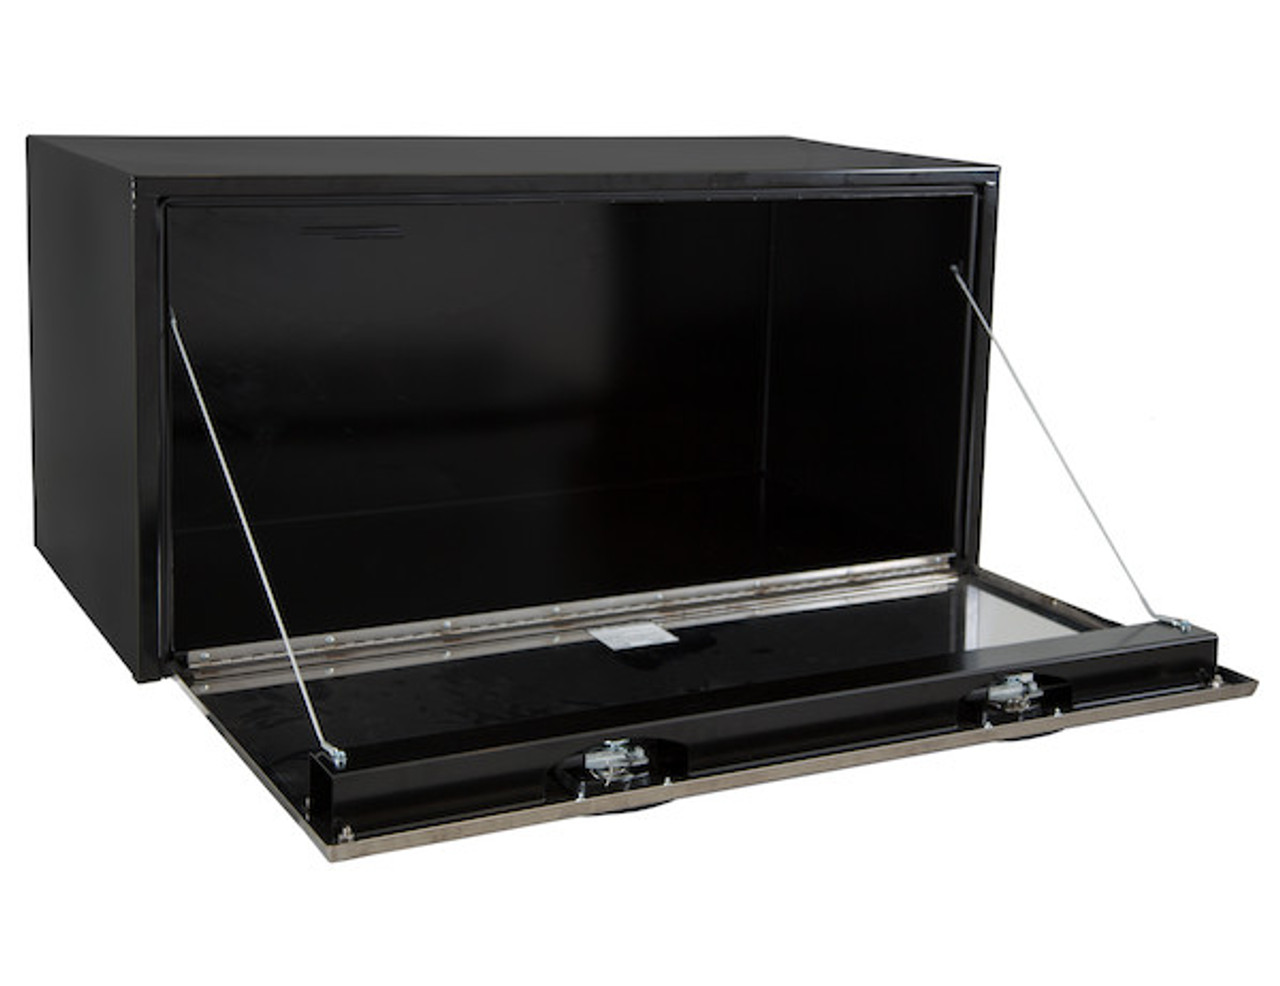 """1704710 BUYERS PRODUCTS BLACK STEEL UNDERBODY TRUCK TOOLBOX WITH STAINLESS STEEL DOOR 24""""HX24""""DX48""""W"""